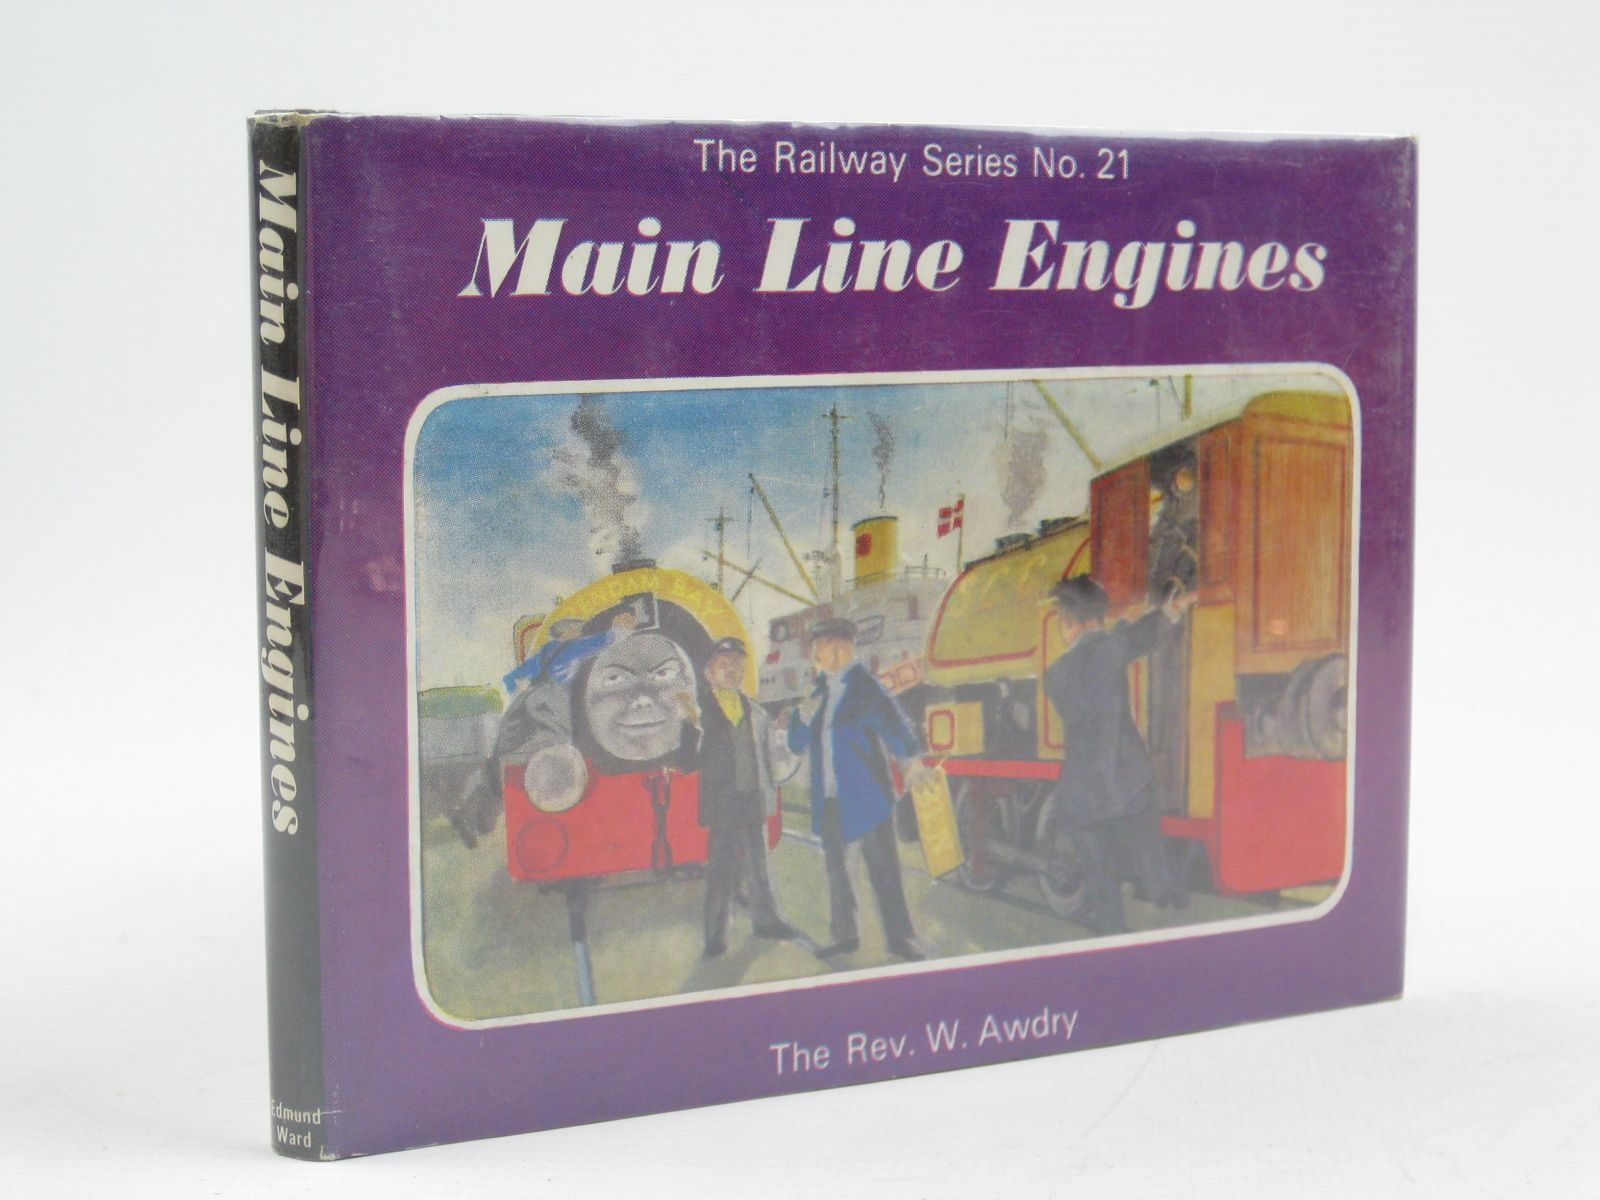 Photo of MAIN LINE ENGINES written by Awdry, Rev. W. illustrated by Edwards, Gunvor Edwards, Peter published by Edmund Ward Ltd. (STOCK CODE: 1316739)  for sale by Stella & Rose's Books